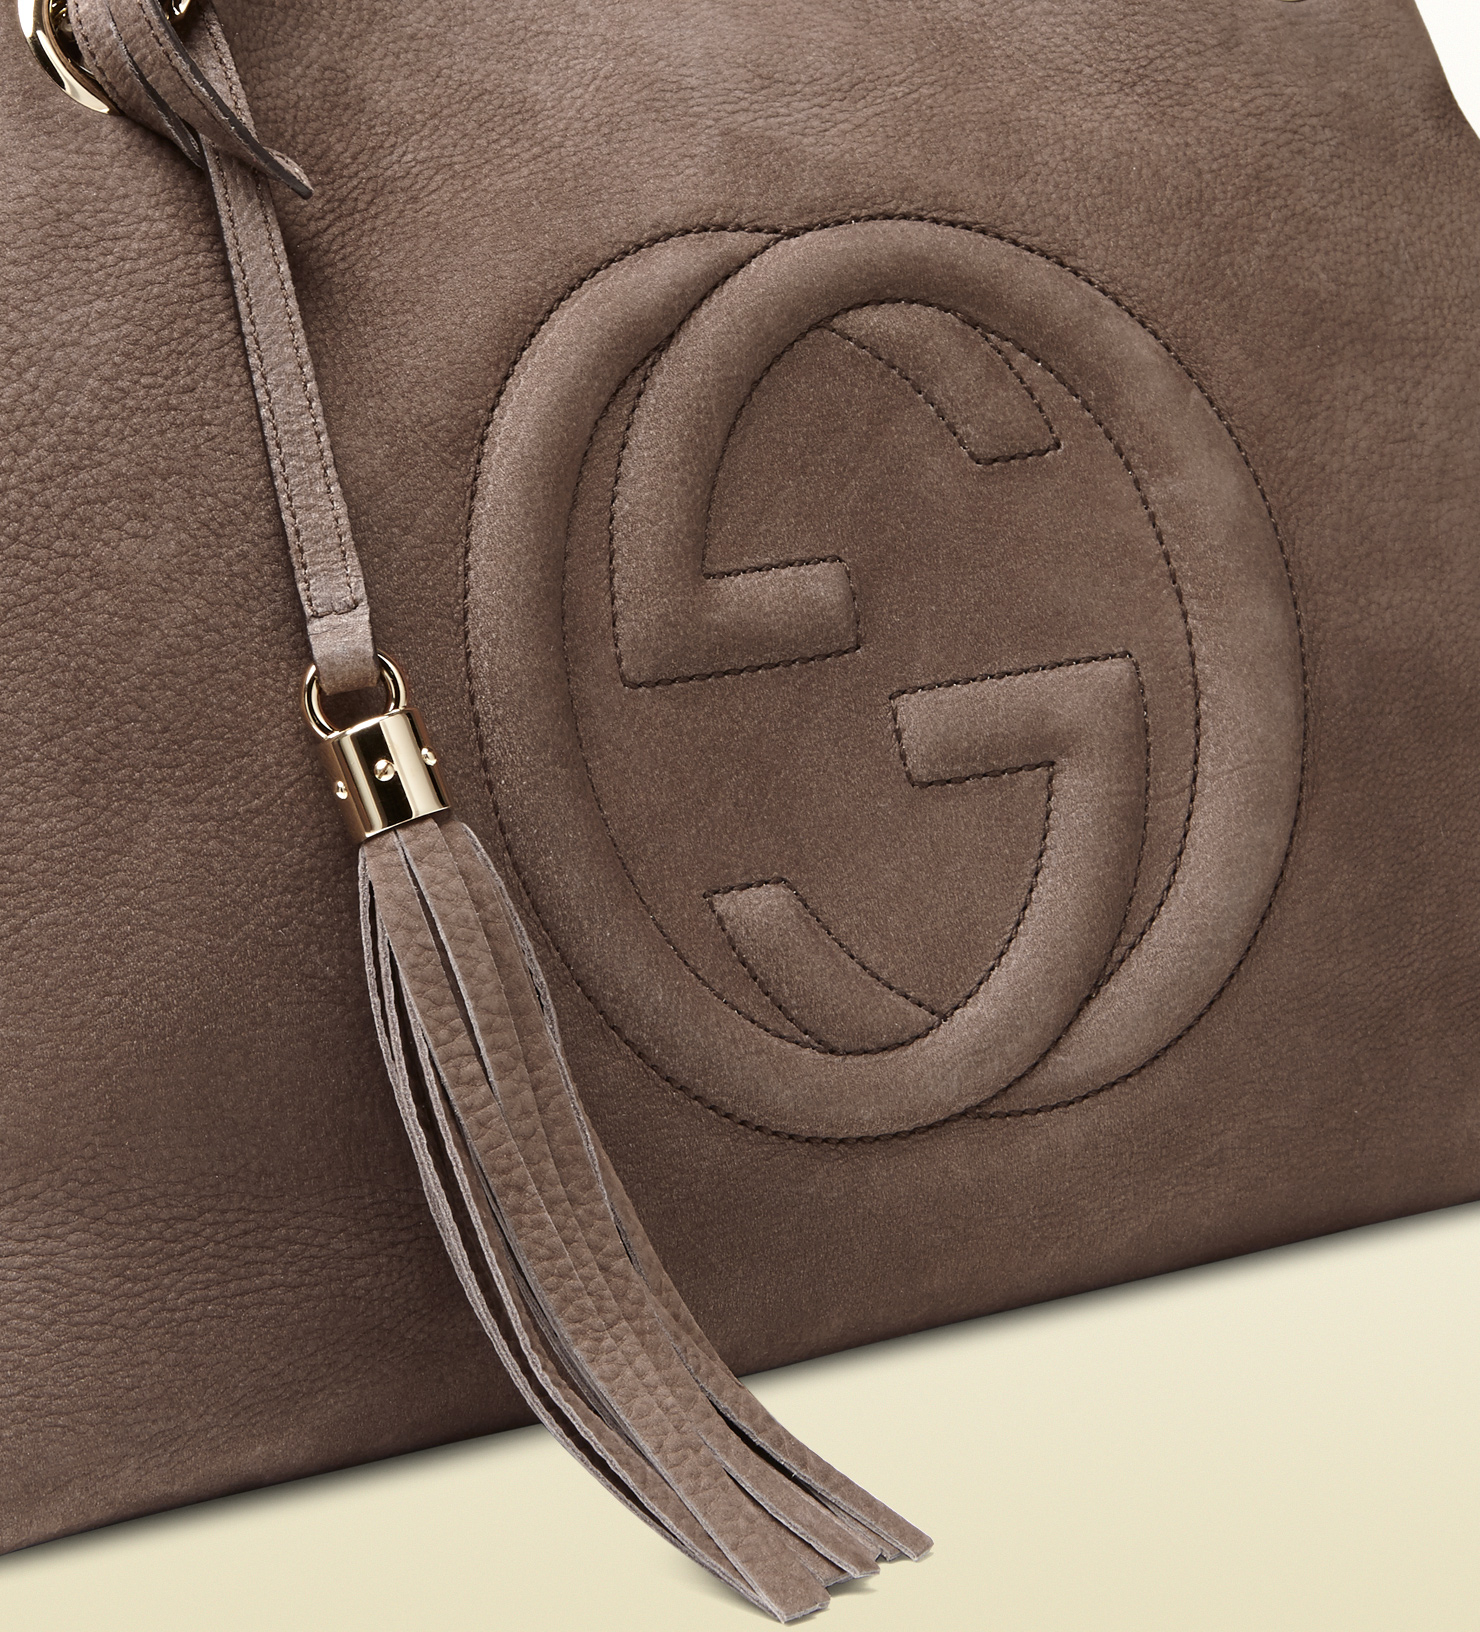 735df4cfd15f6 Gucci Soho Nubuck Leather Shoulder Bag in Gray - Lyst